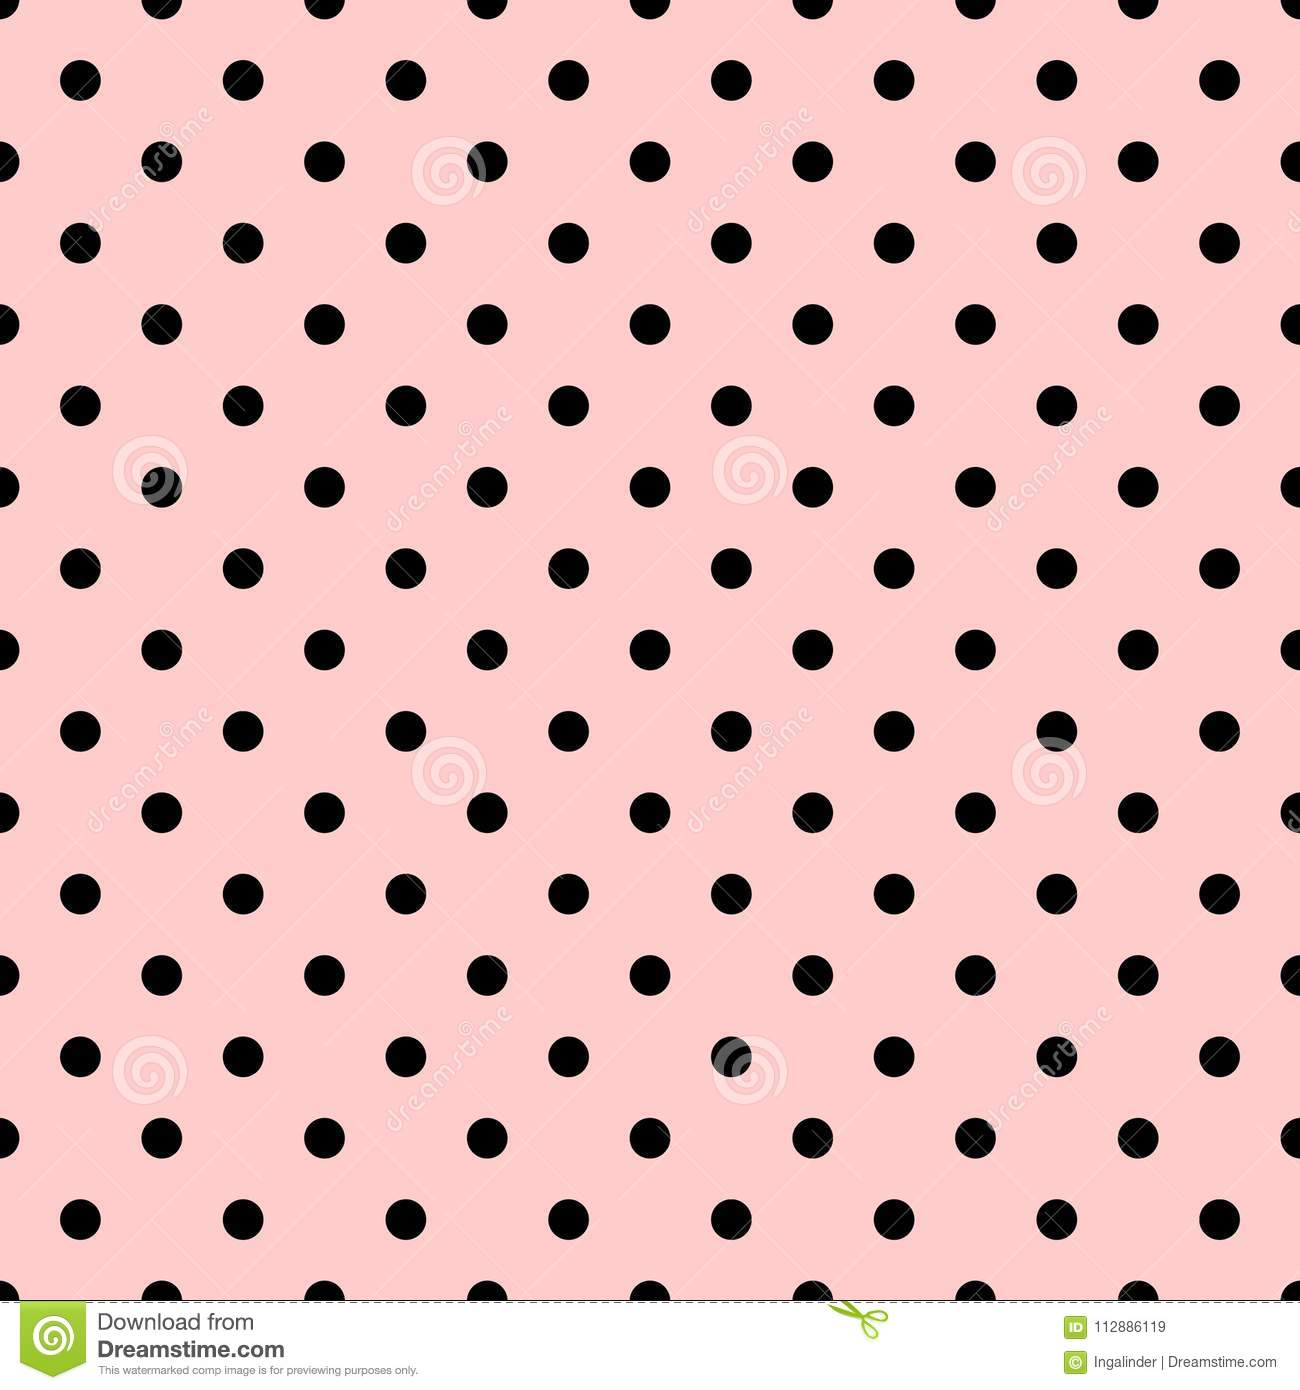 Tile Vector Pattern With Black Polka Dots On Pastel Pink Background For Decoration Wallpaper